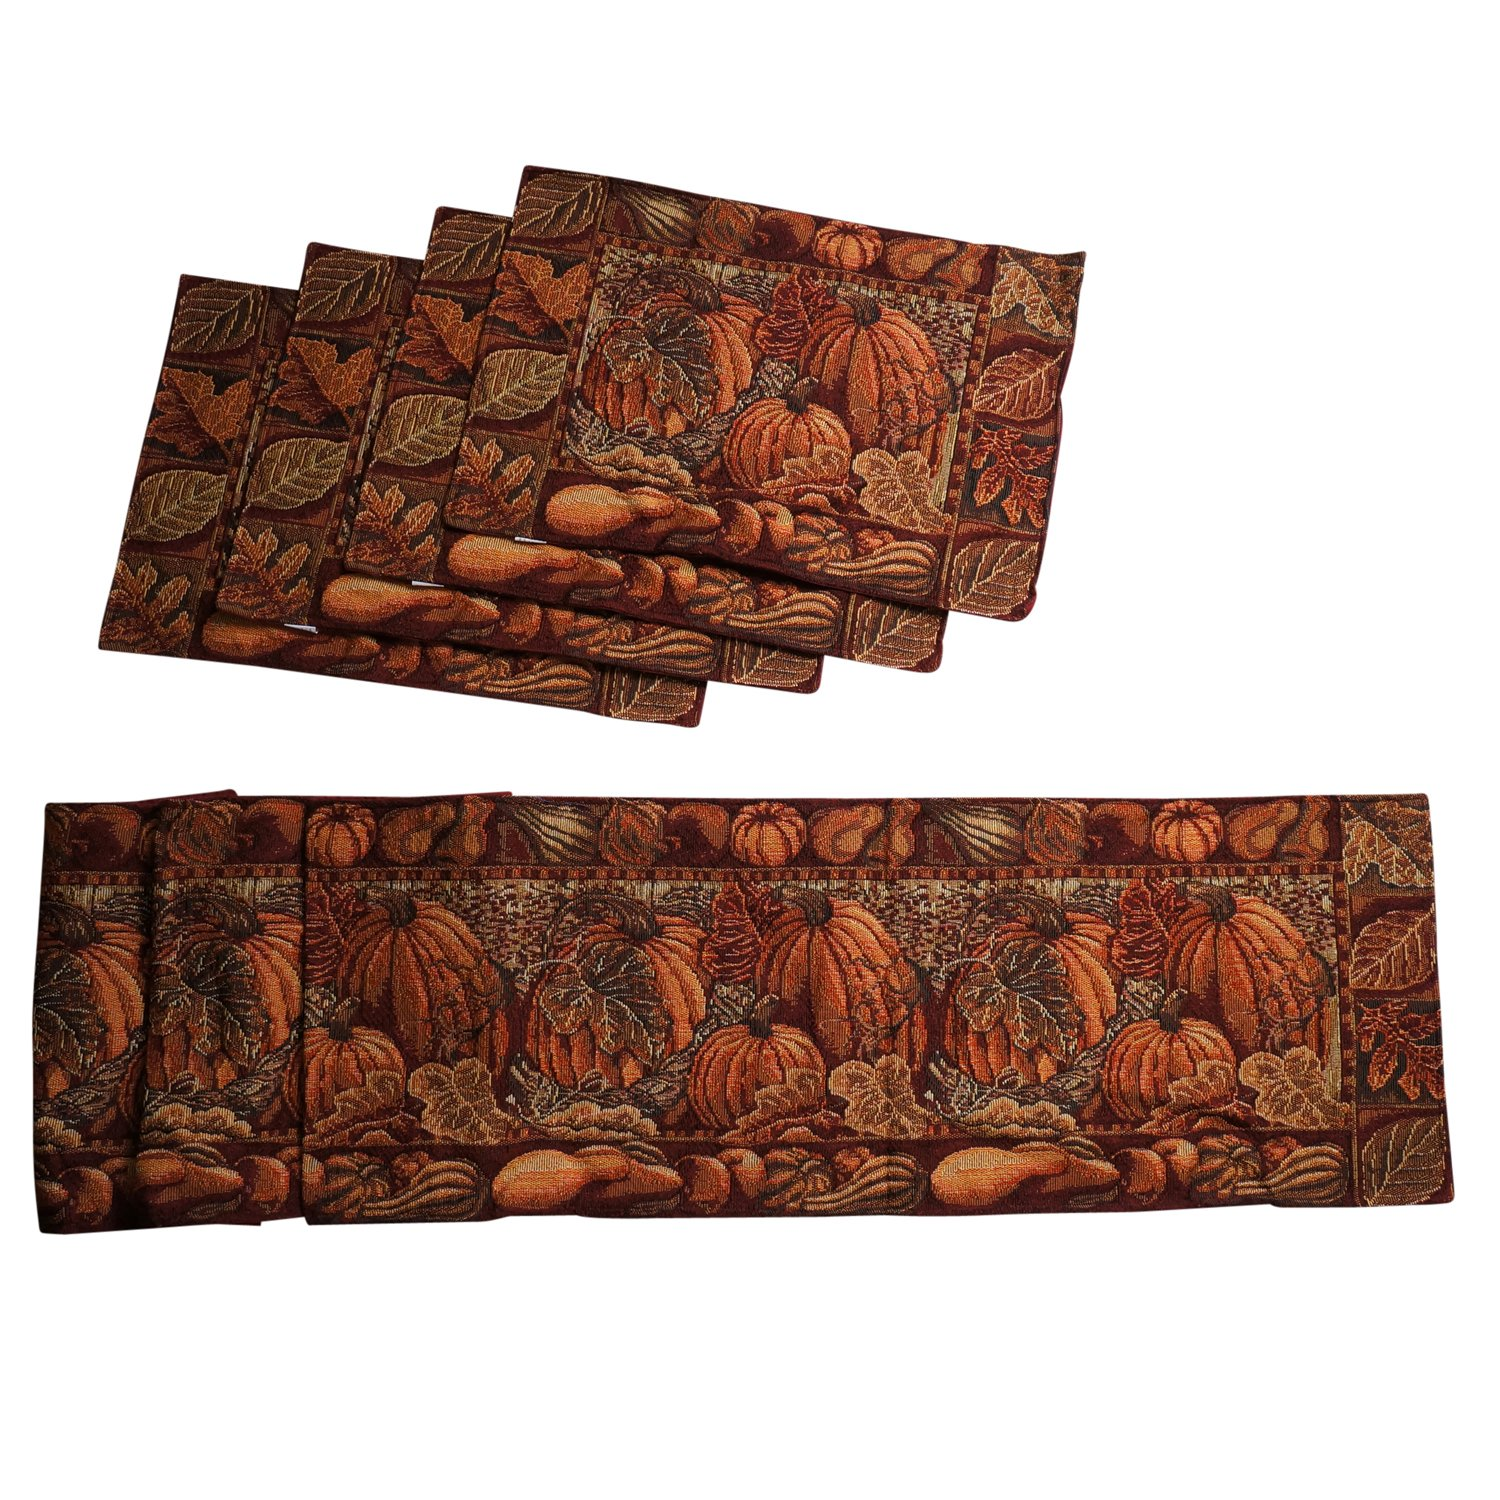 Harvest Pumpkin Tapestry Table Runner and Placemats, Set of 5 by One Holiday Lane